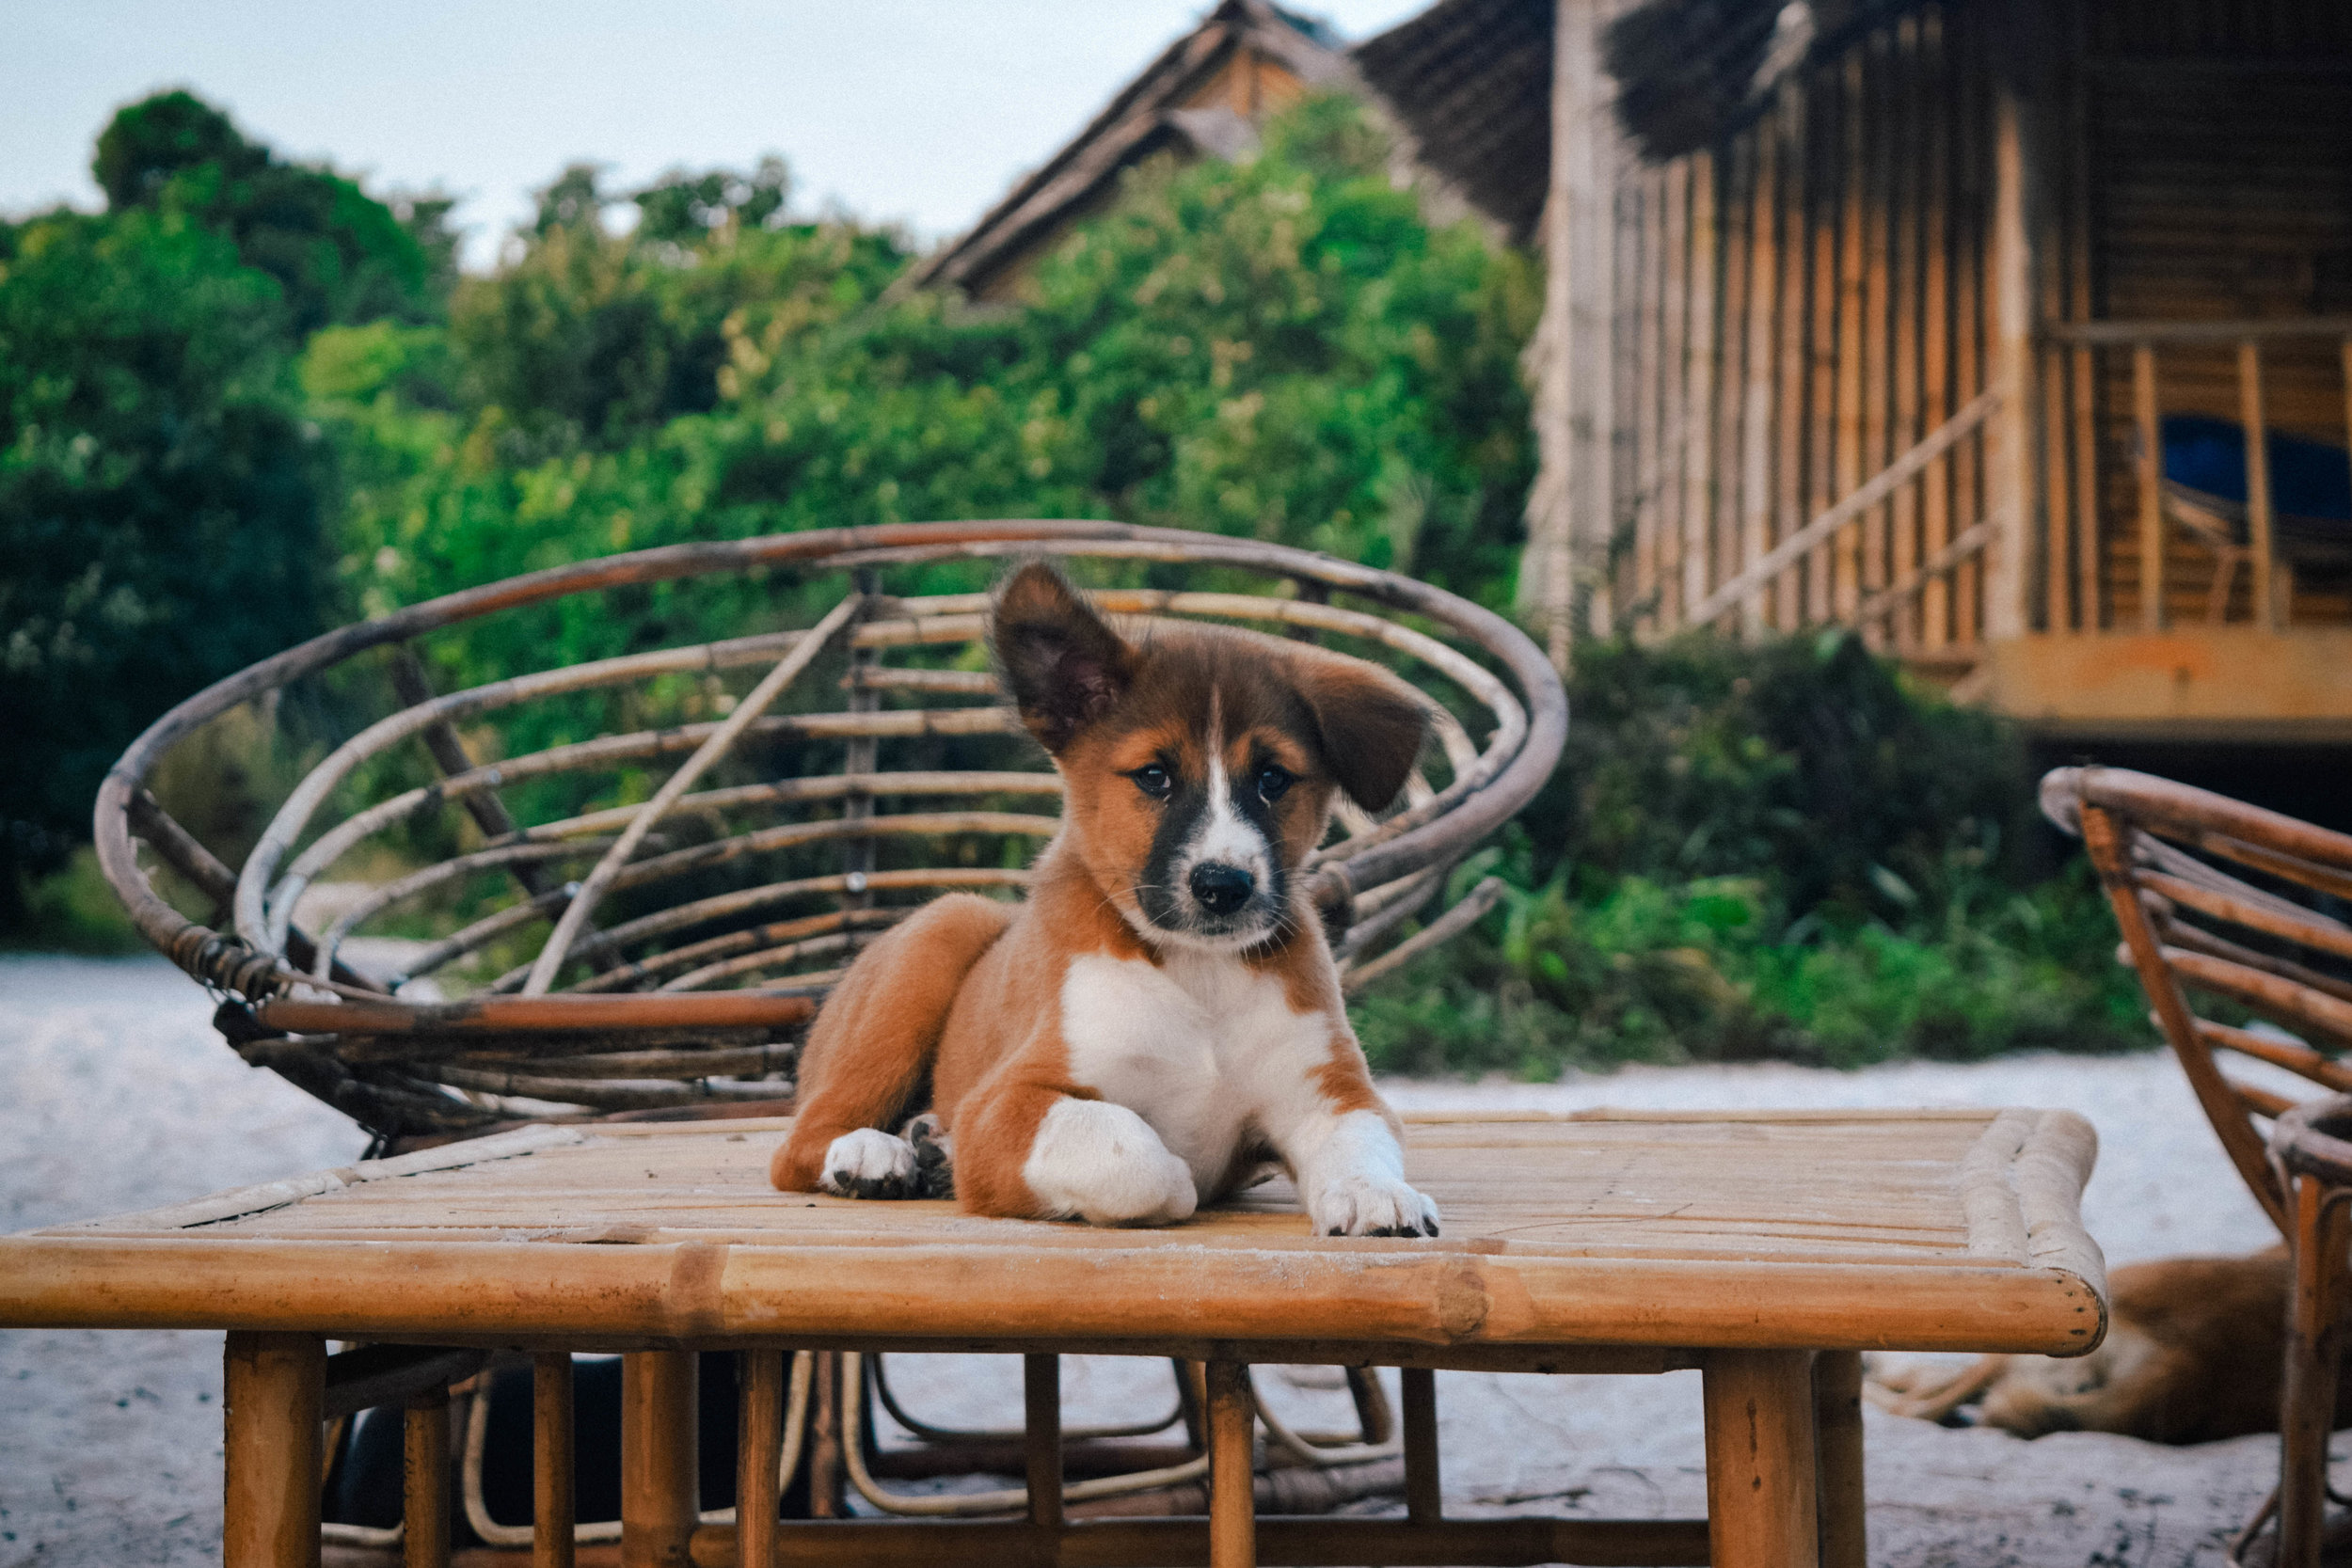 Puppy on the beach in Cambodia